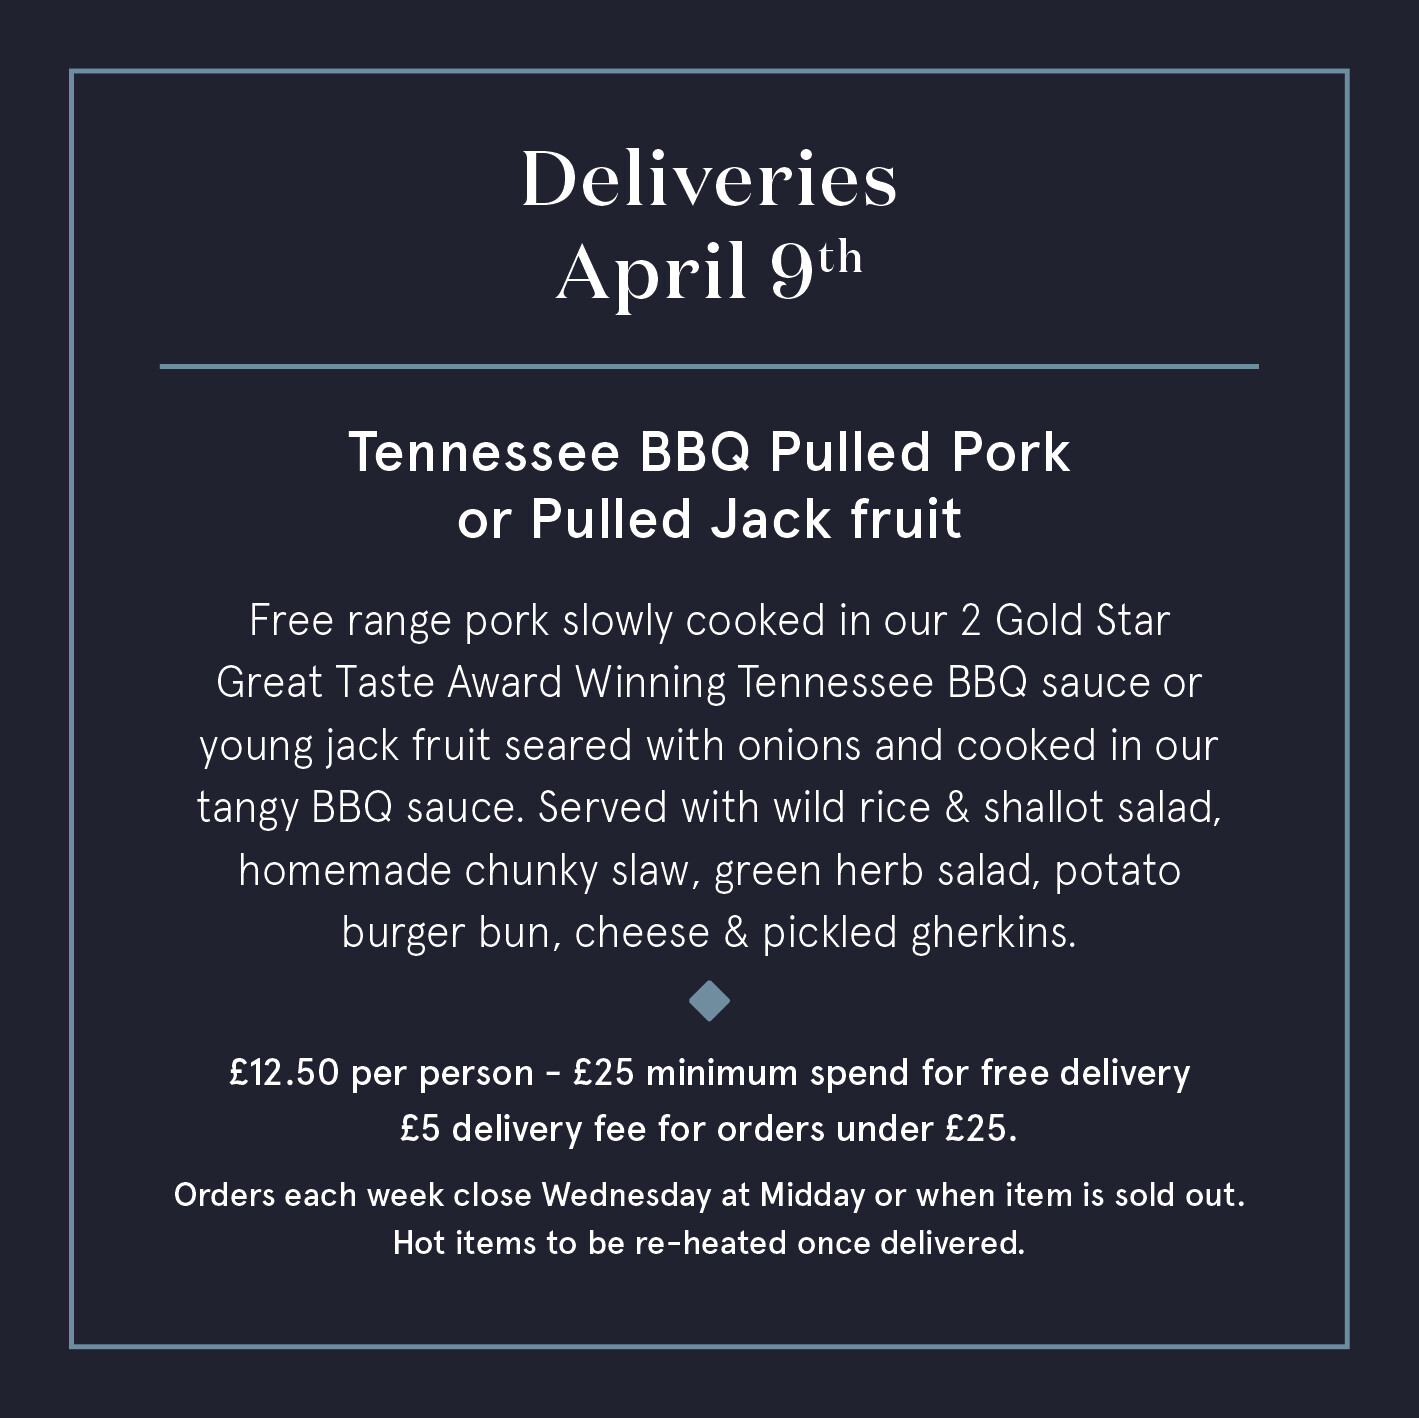 April 9th - Tennessee BBQ Pulled Pork or Pulled Jackfruit